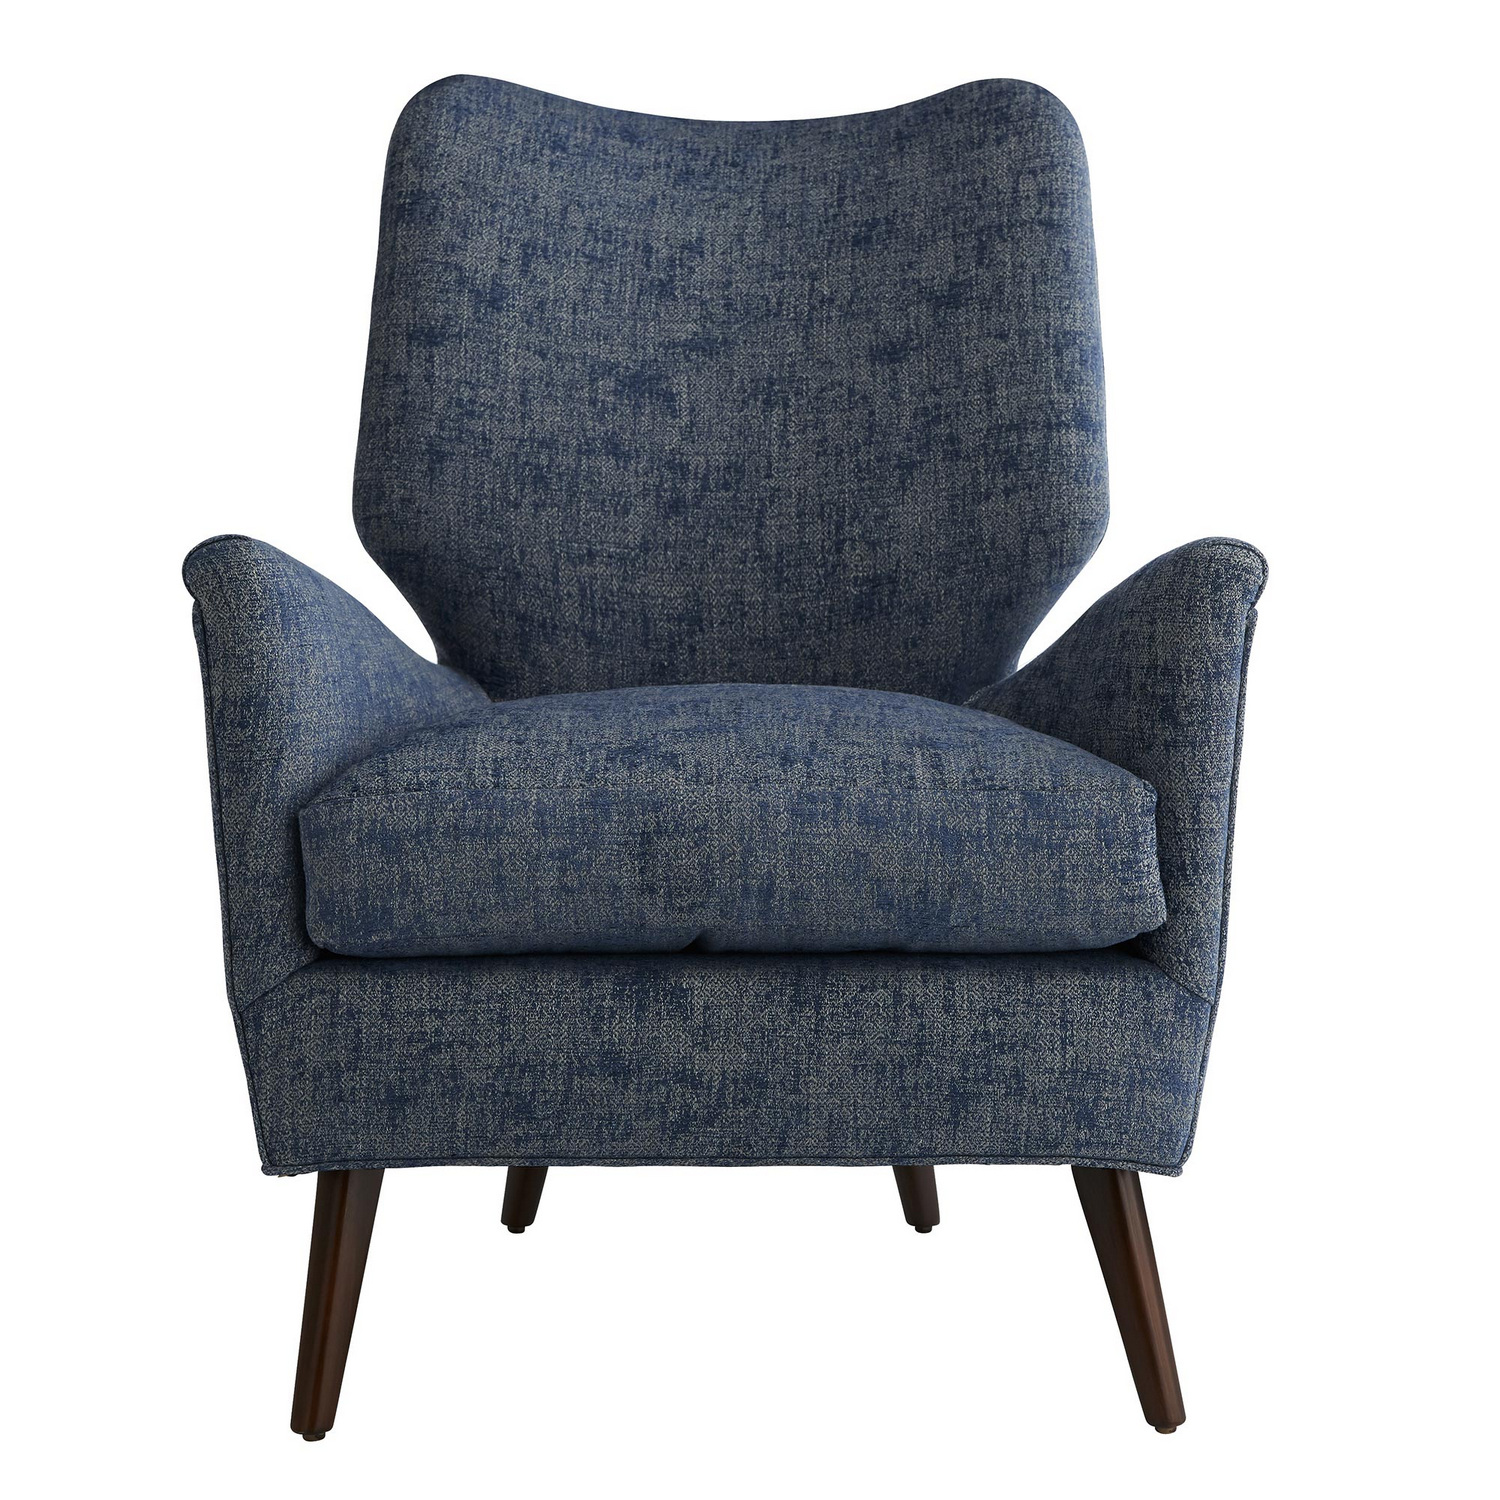 Chair by Arteriors 8020